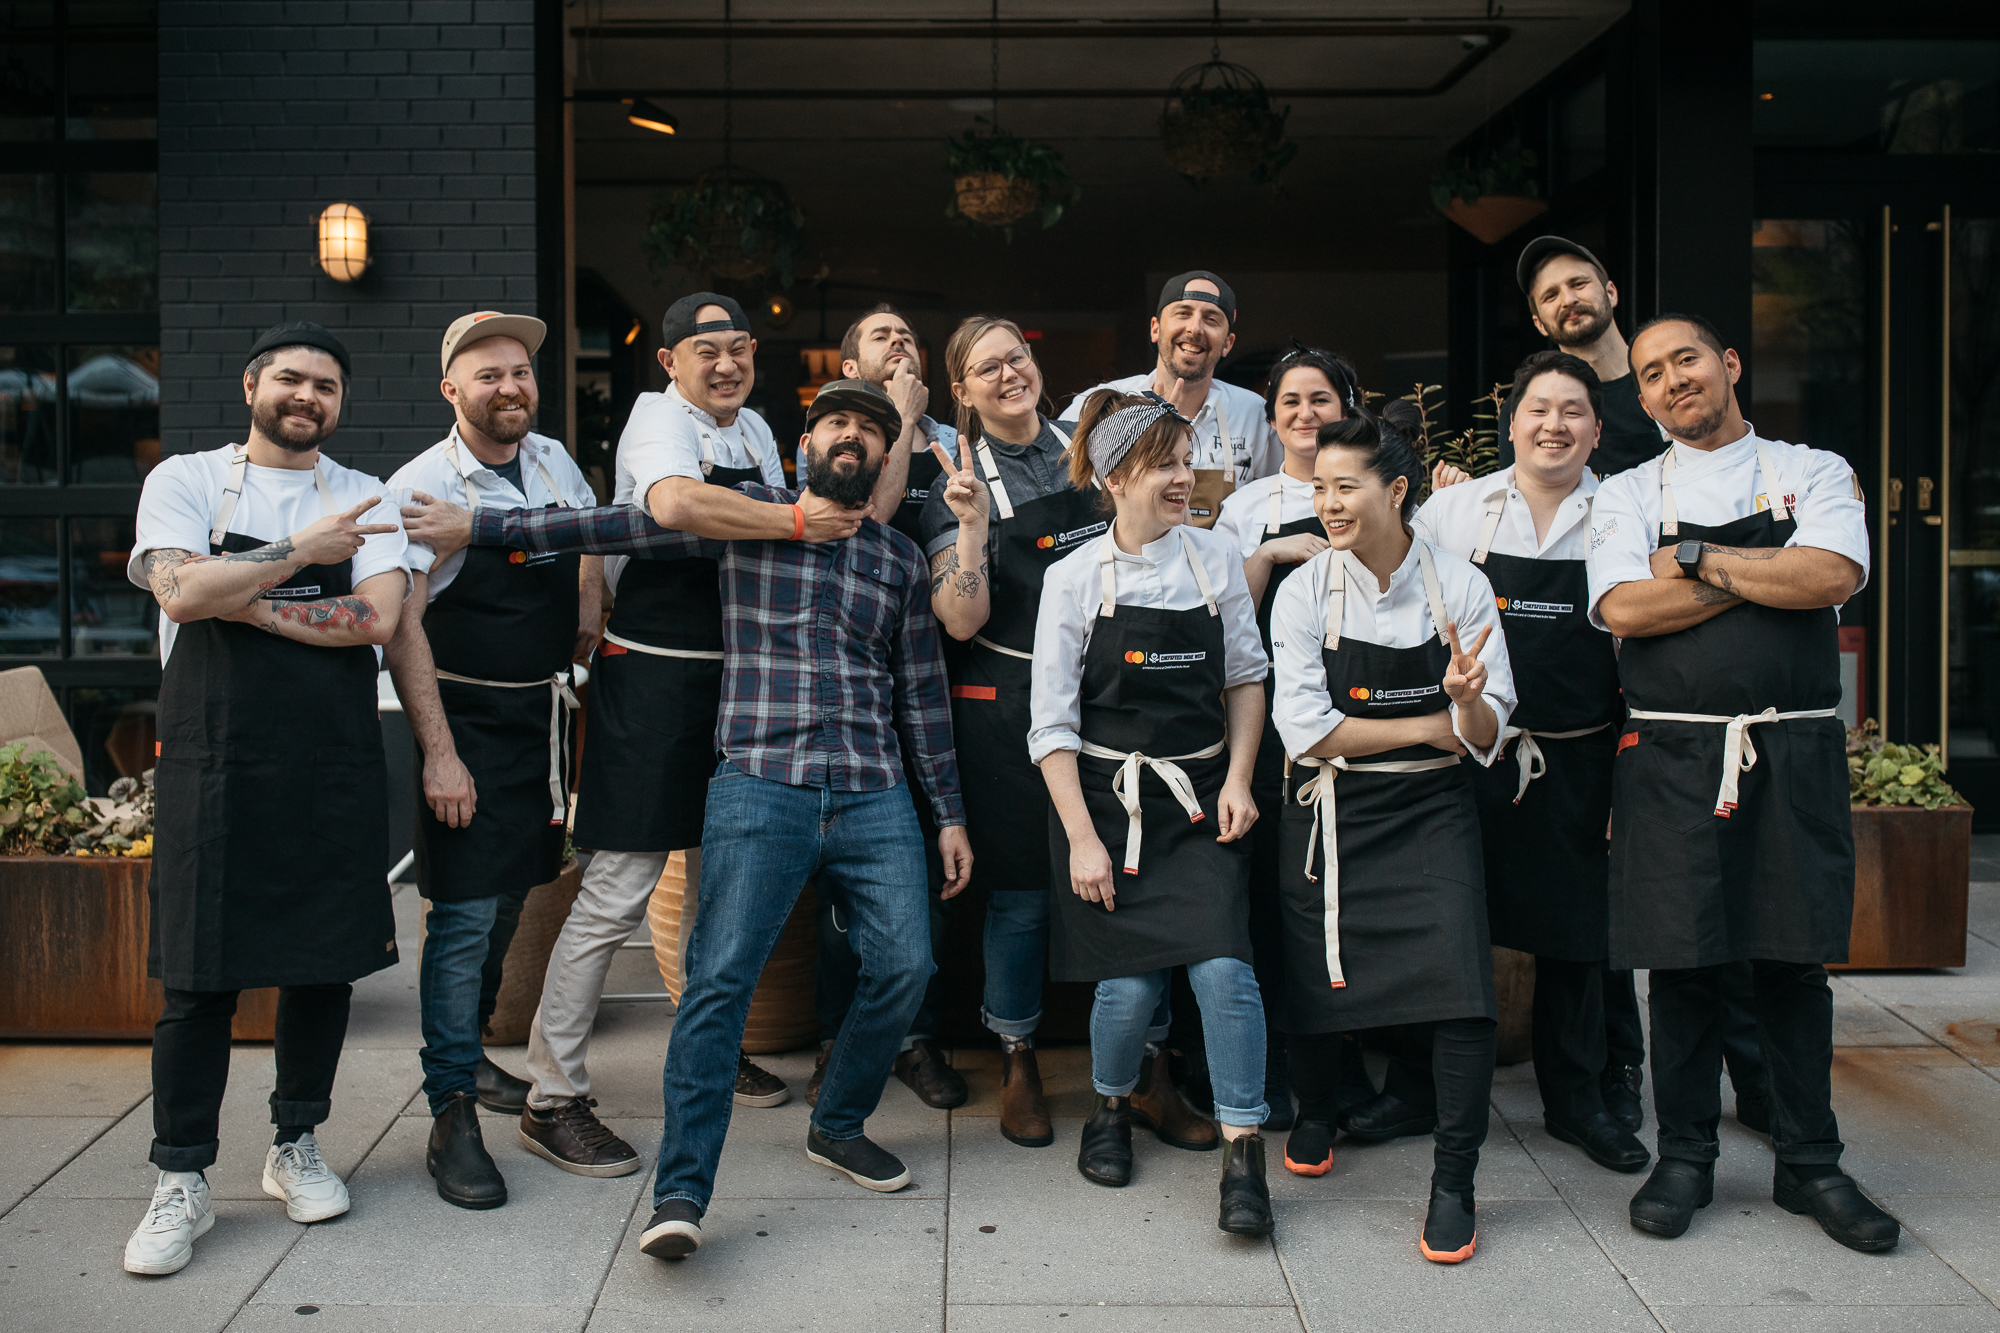 By far the best part of the event (well, after the incredible food, of course)was seeing the chefs letting loose, having fun with guests, and most importantly, each other! (Image: Betty Clicker Photography)